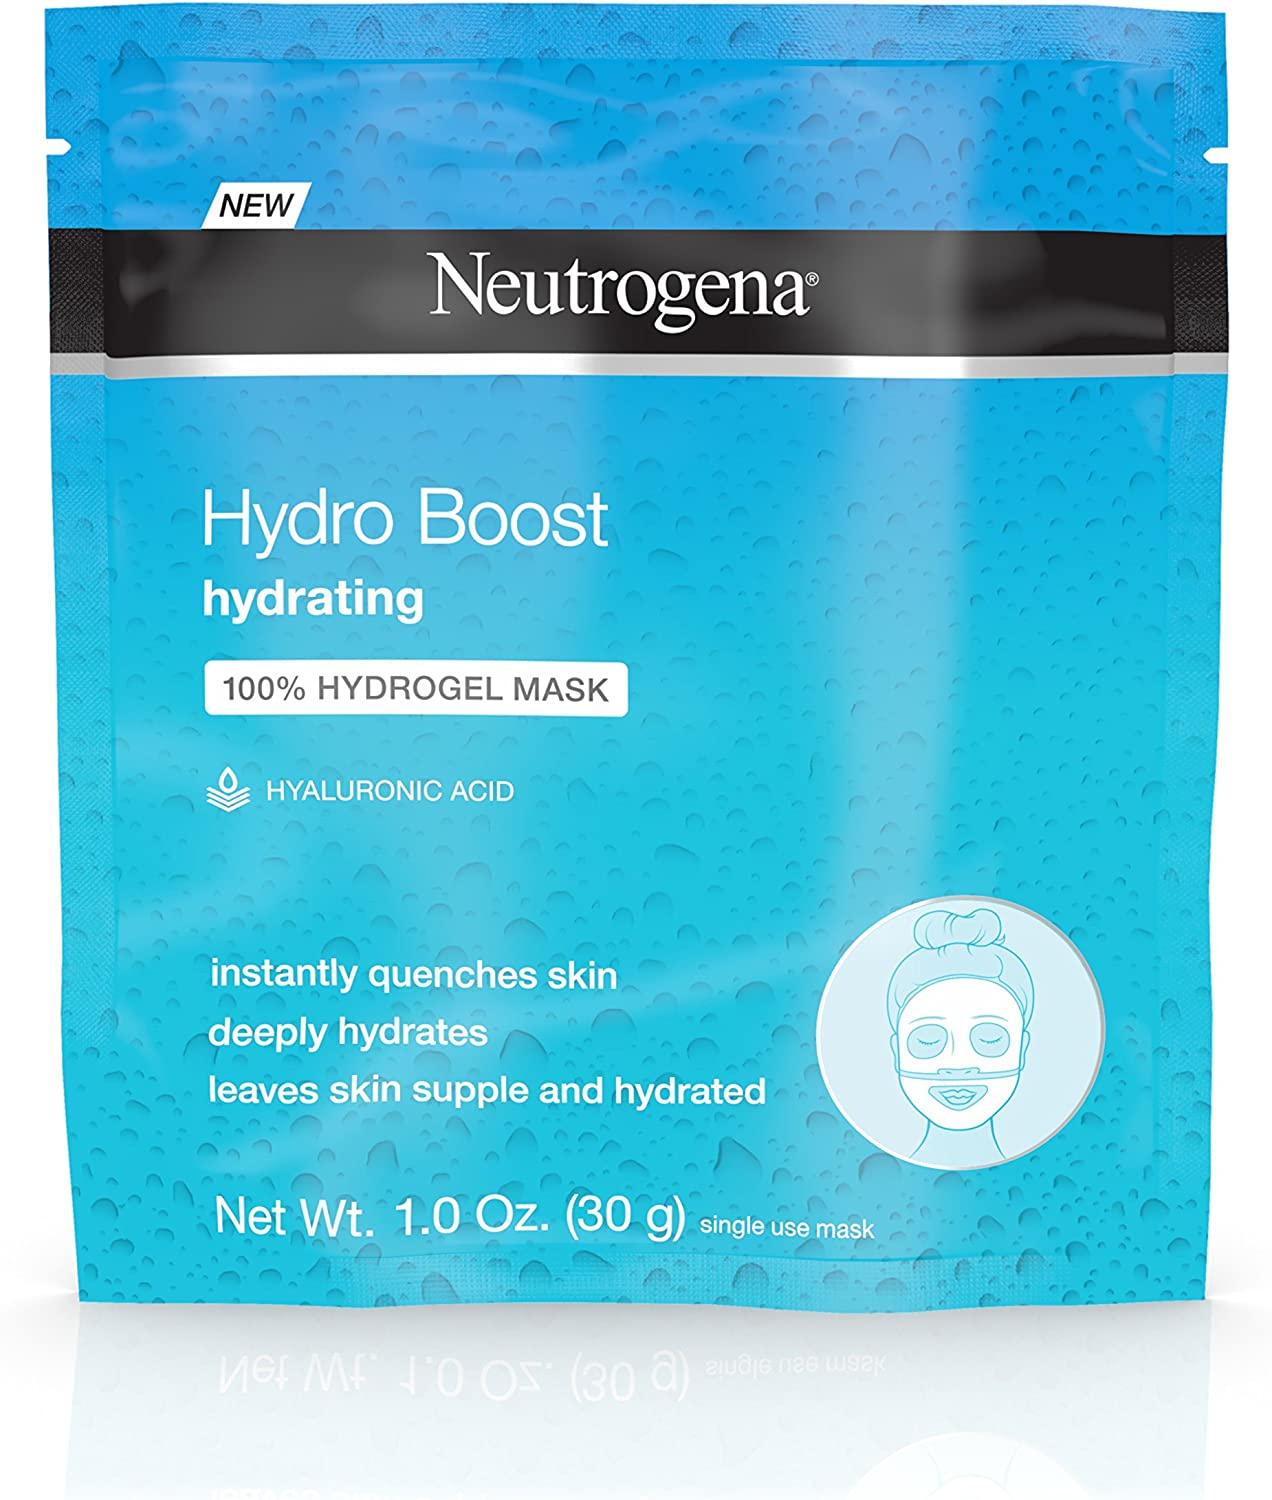 Neutrogena Hydro Boost Moisturizing & Hydrating 100% Hydrogel Face Mask Sheet with Hyaluronic Acid, 1 oz ( Pack of 10)